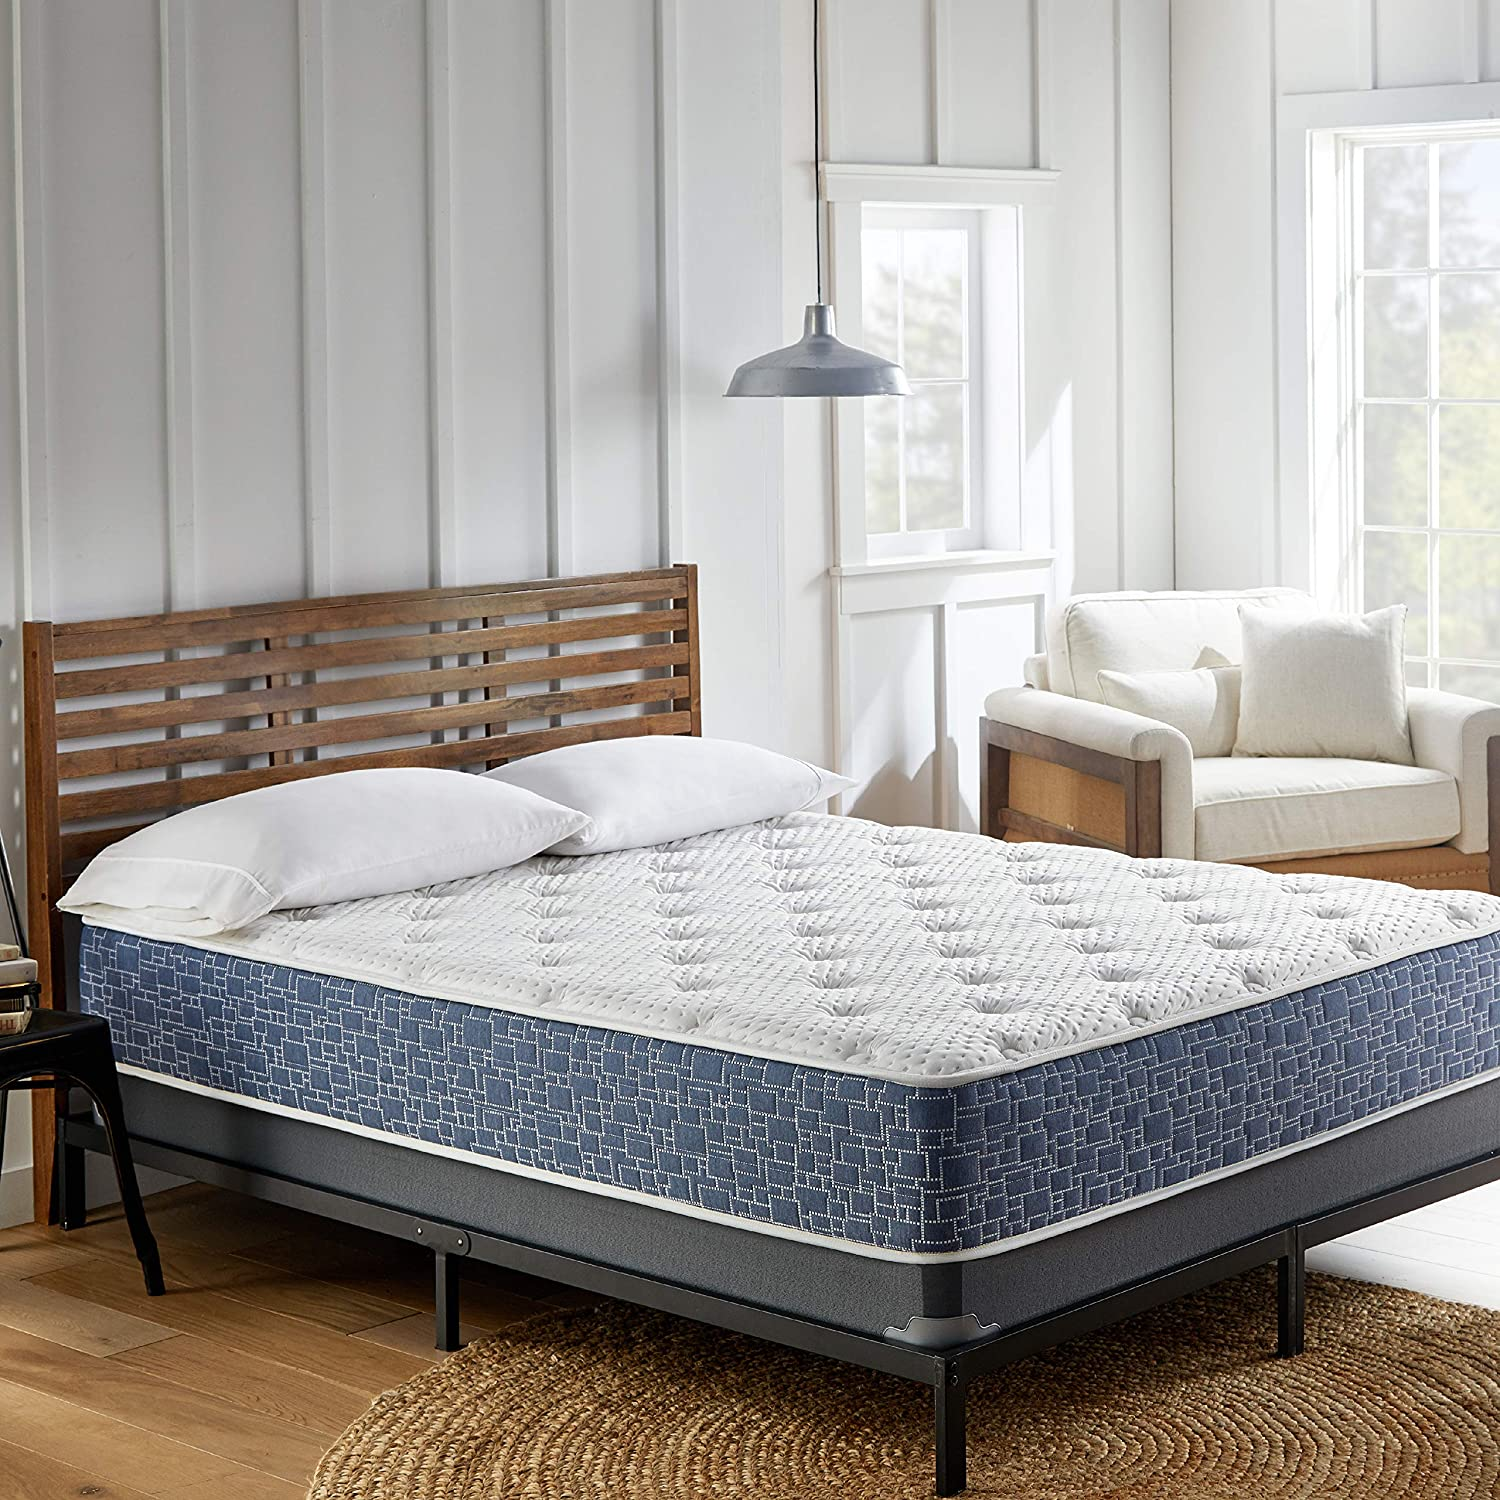 AMERICAN BEDDING 11-inch Medium Top Hybrid, Gel Memory Foam, Firm Support Foam, Pocketed Coil Spring Mattress, Comfort, Refreshing Coolness, King